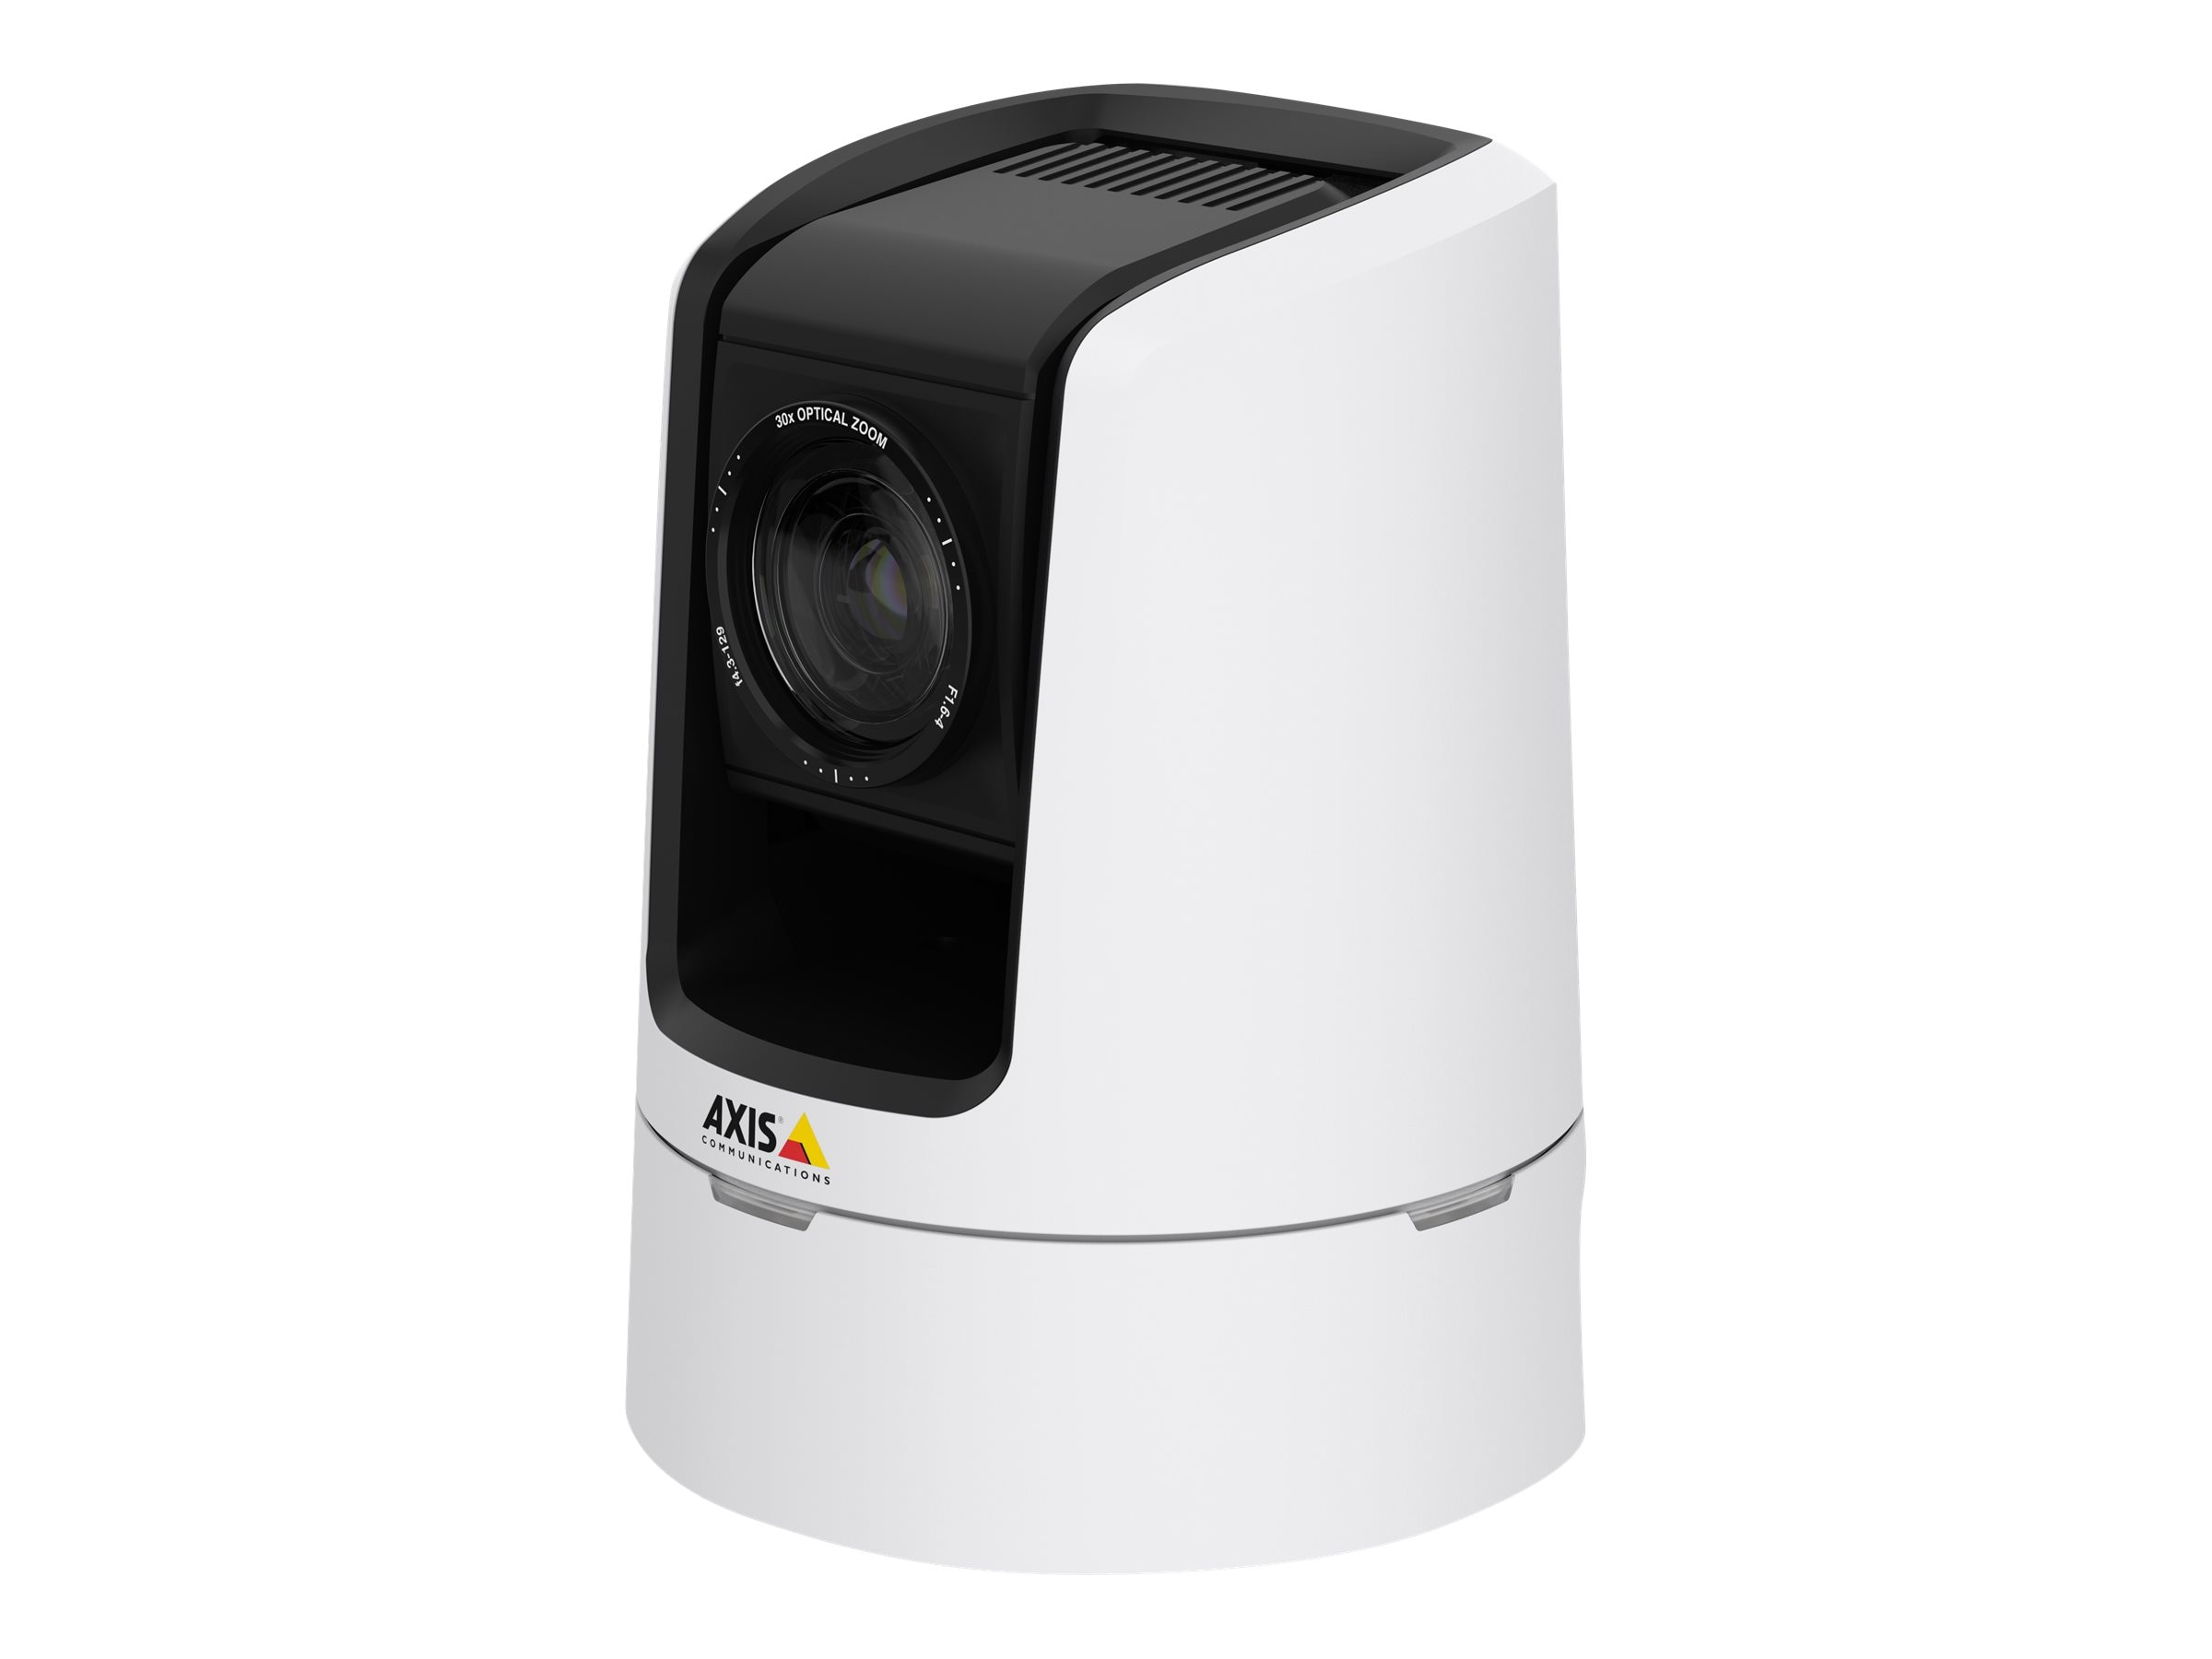 Axis V5915 60HZ PTZ Network Camera, 0634-004, 22902275, Cameras - Security